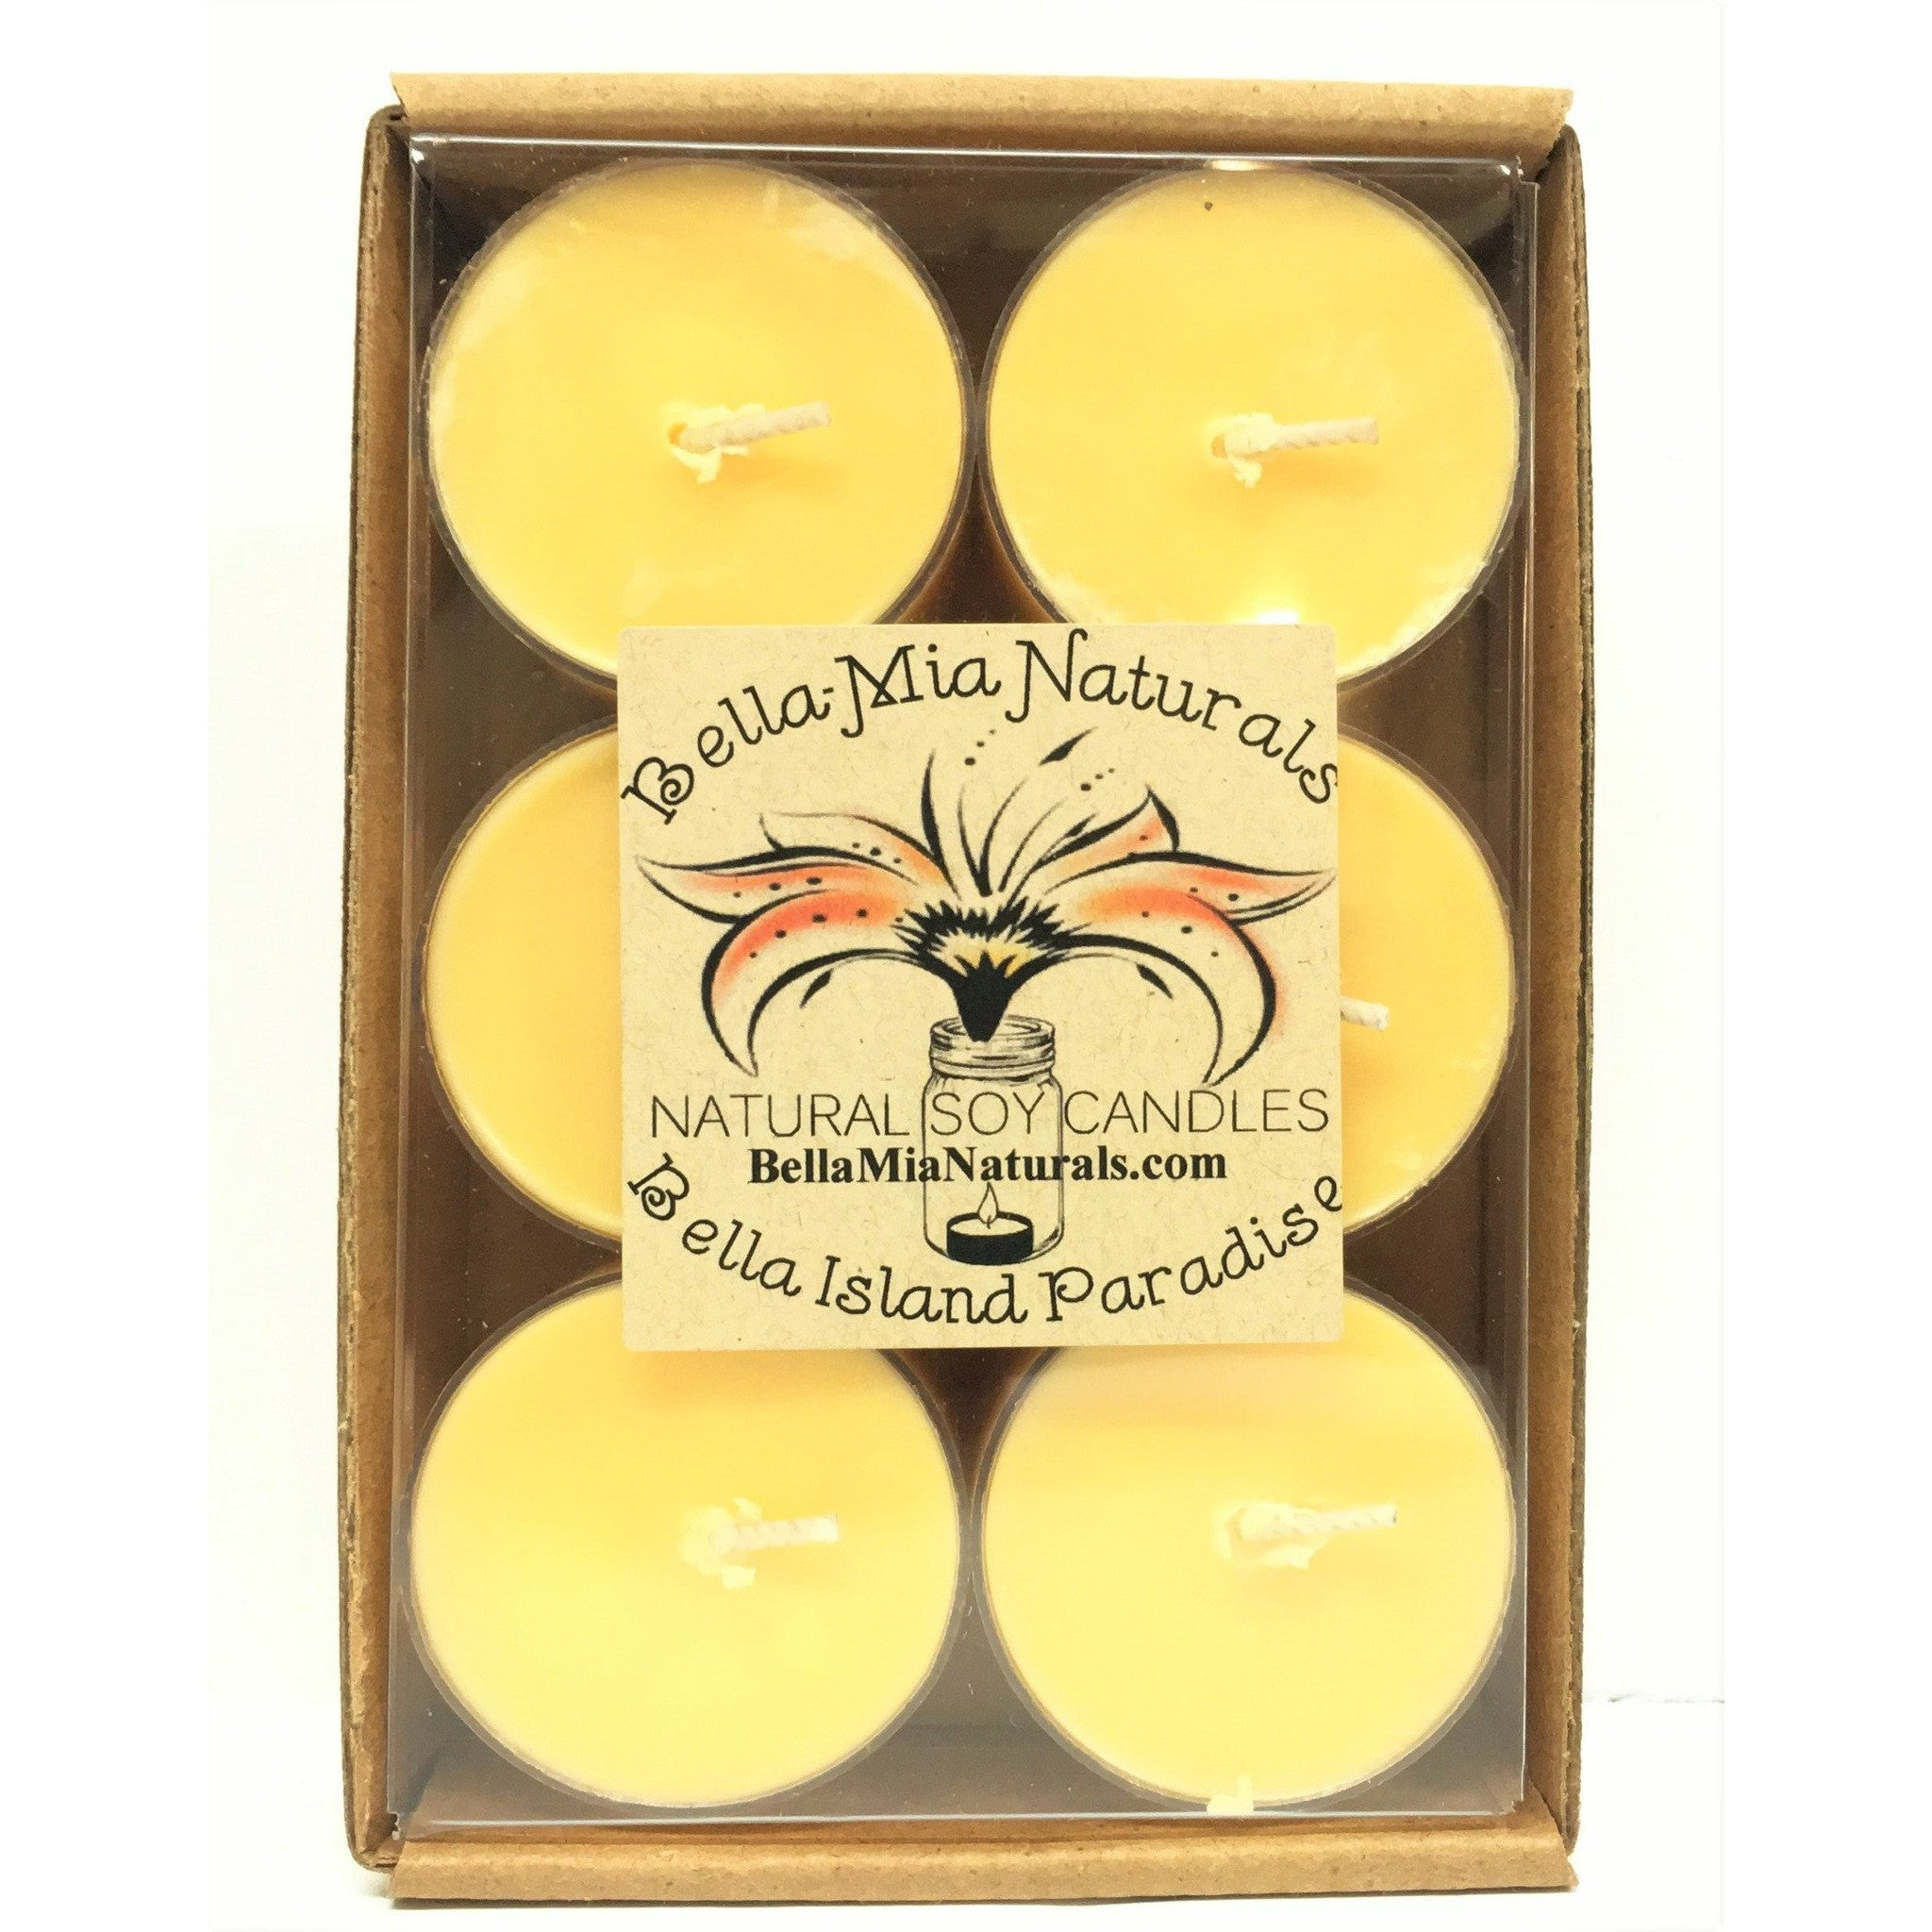 Bella Island Paradise Natural Hand Poured Soy Candles - Tealight-6 Pack - Bella-Mia Naturals All Natural Soy Candles & Lip Balms - 4